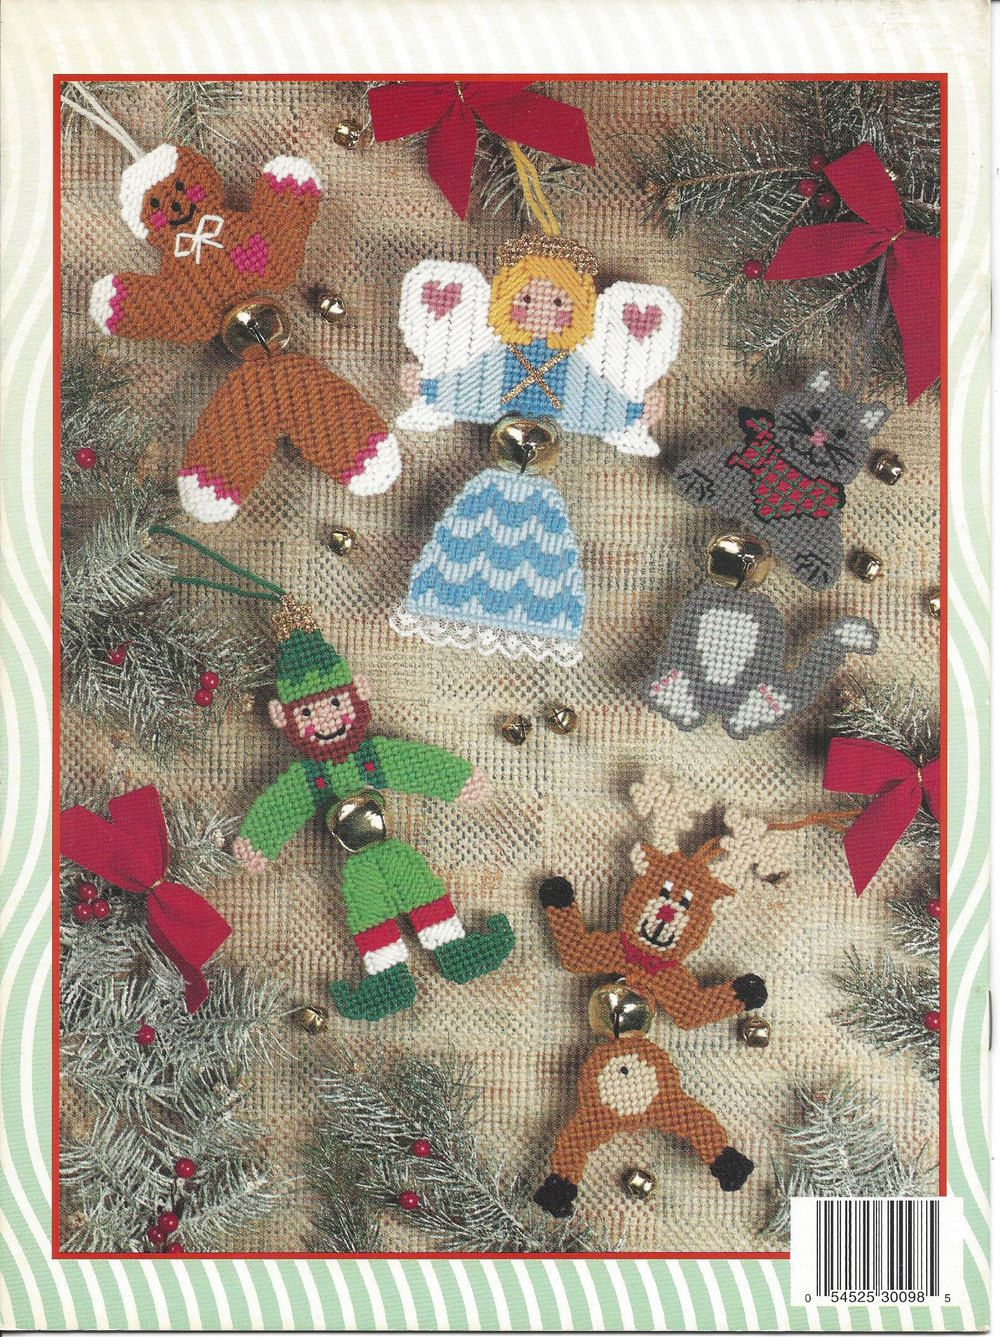 Jingle Bell Buddies Plastic Canvas Pattern by KnitKnacksCreations